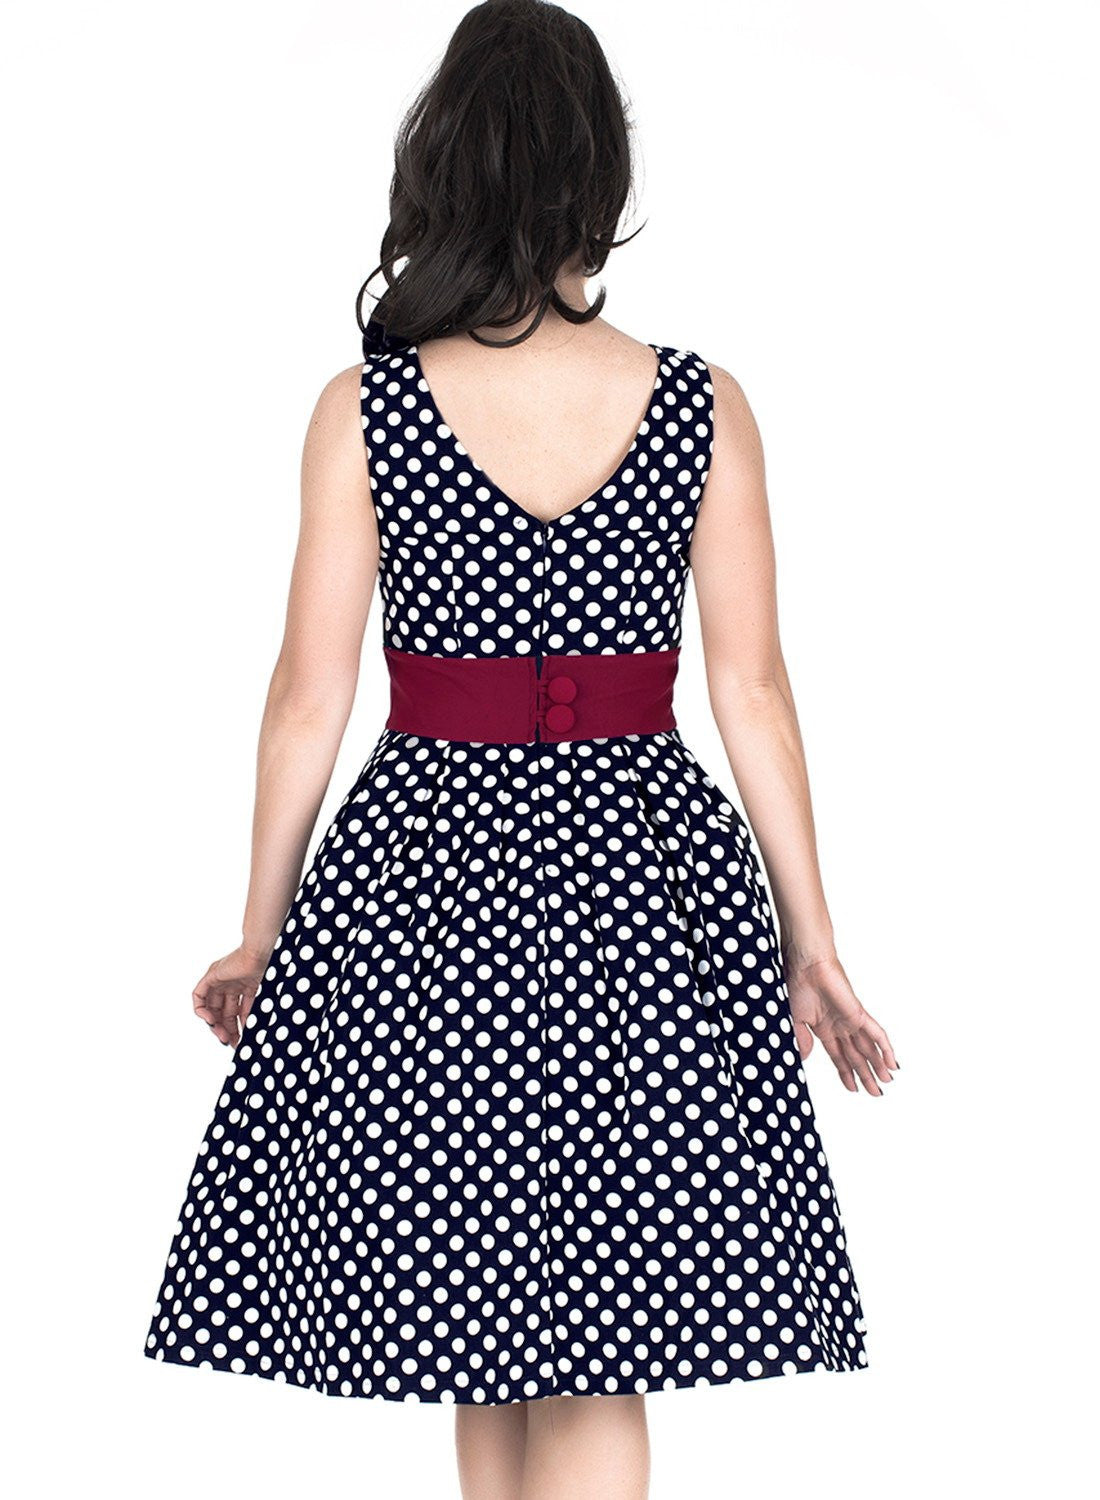 Vintage Polka Dot 1950'S Party Dress